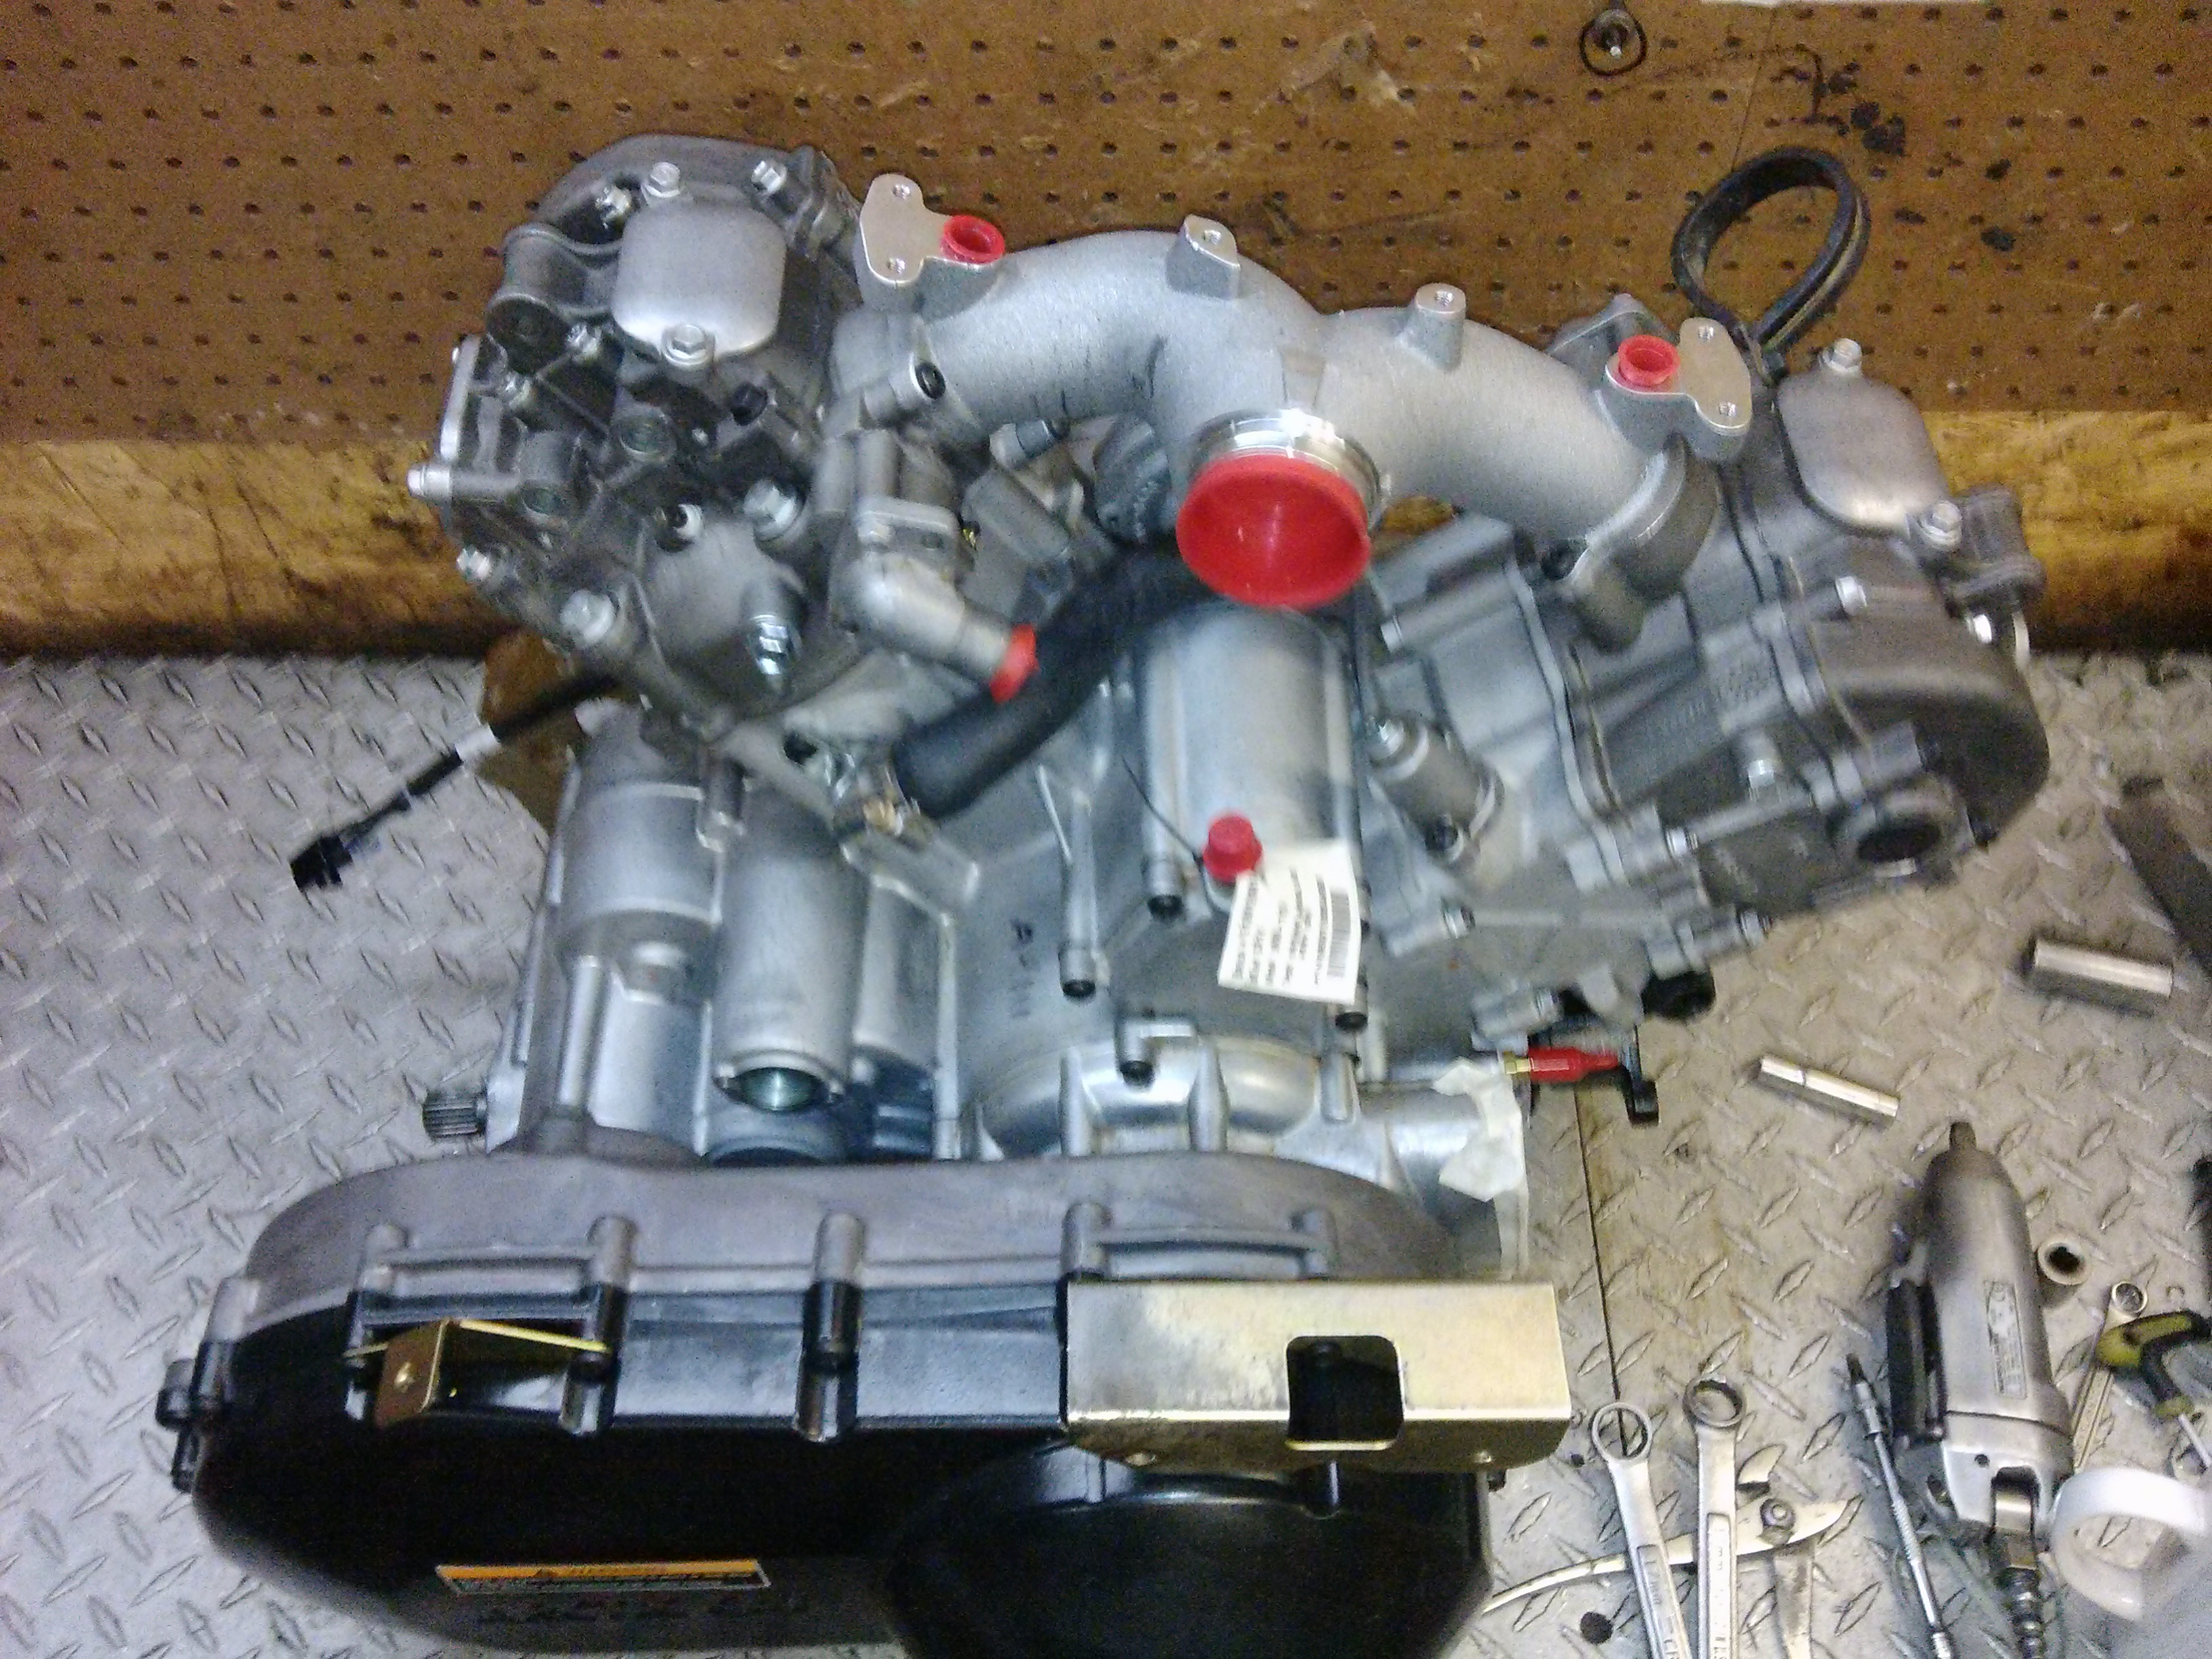 New updated 2013 engine fitting to go in